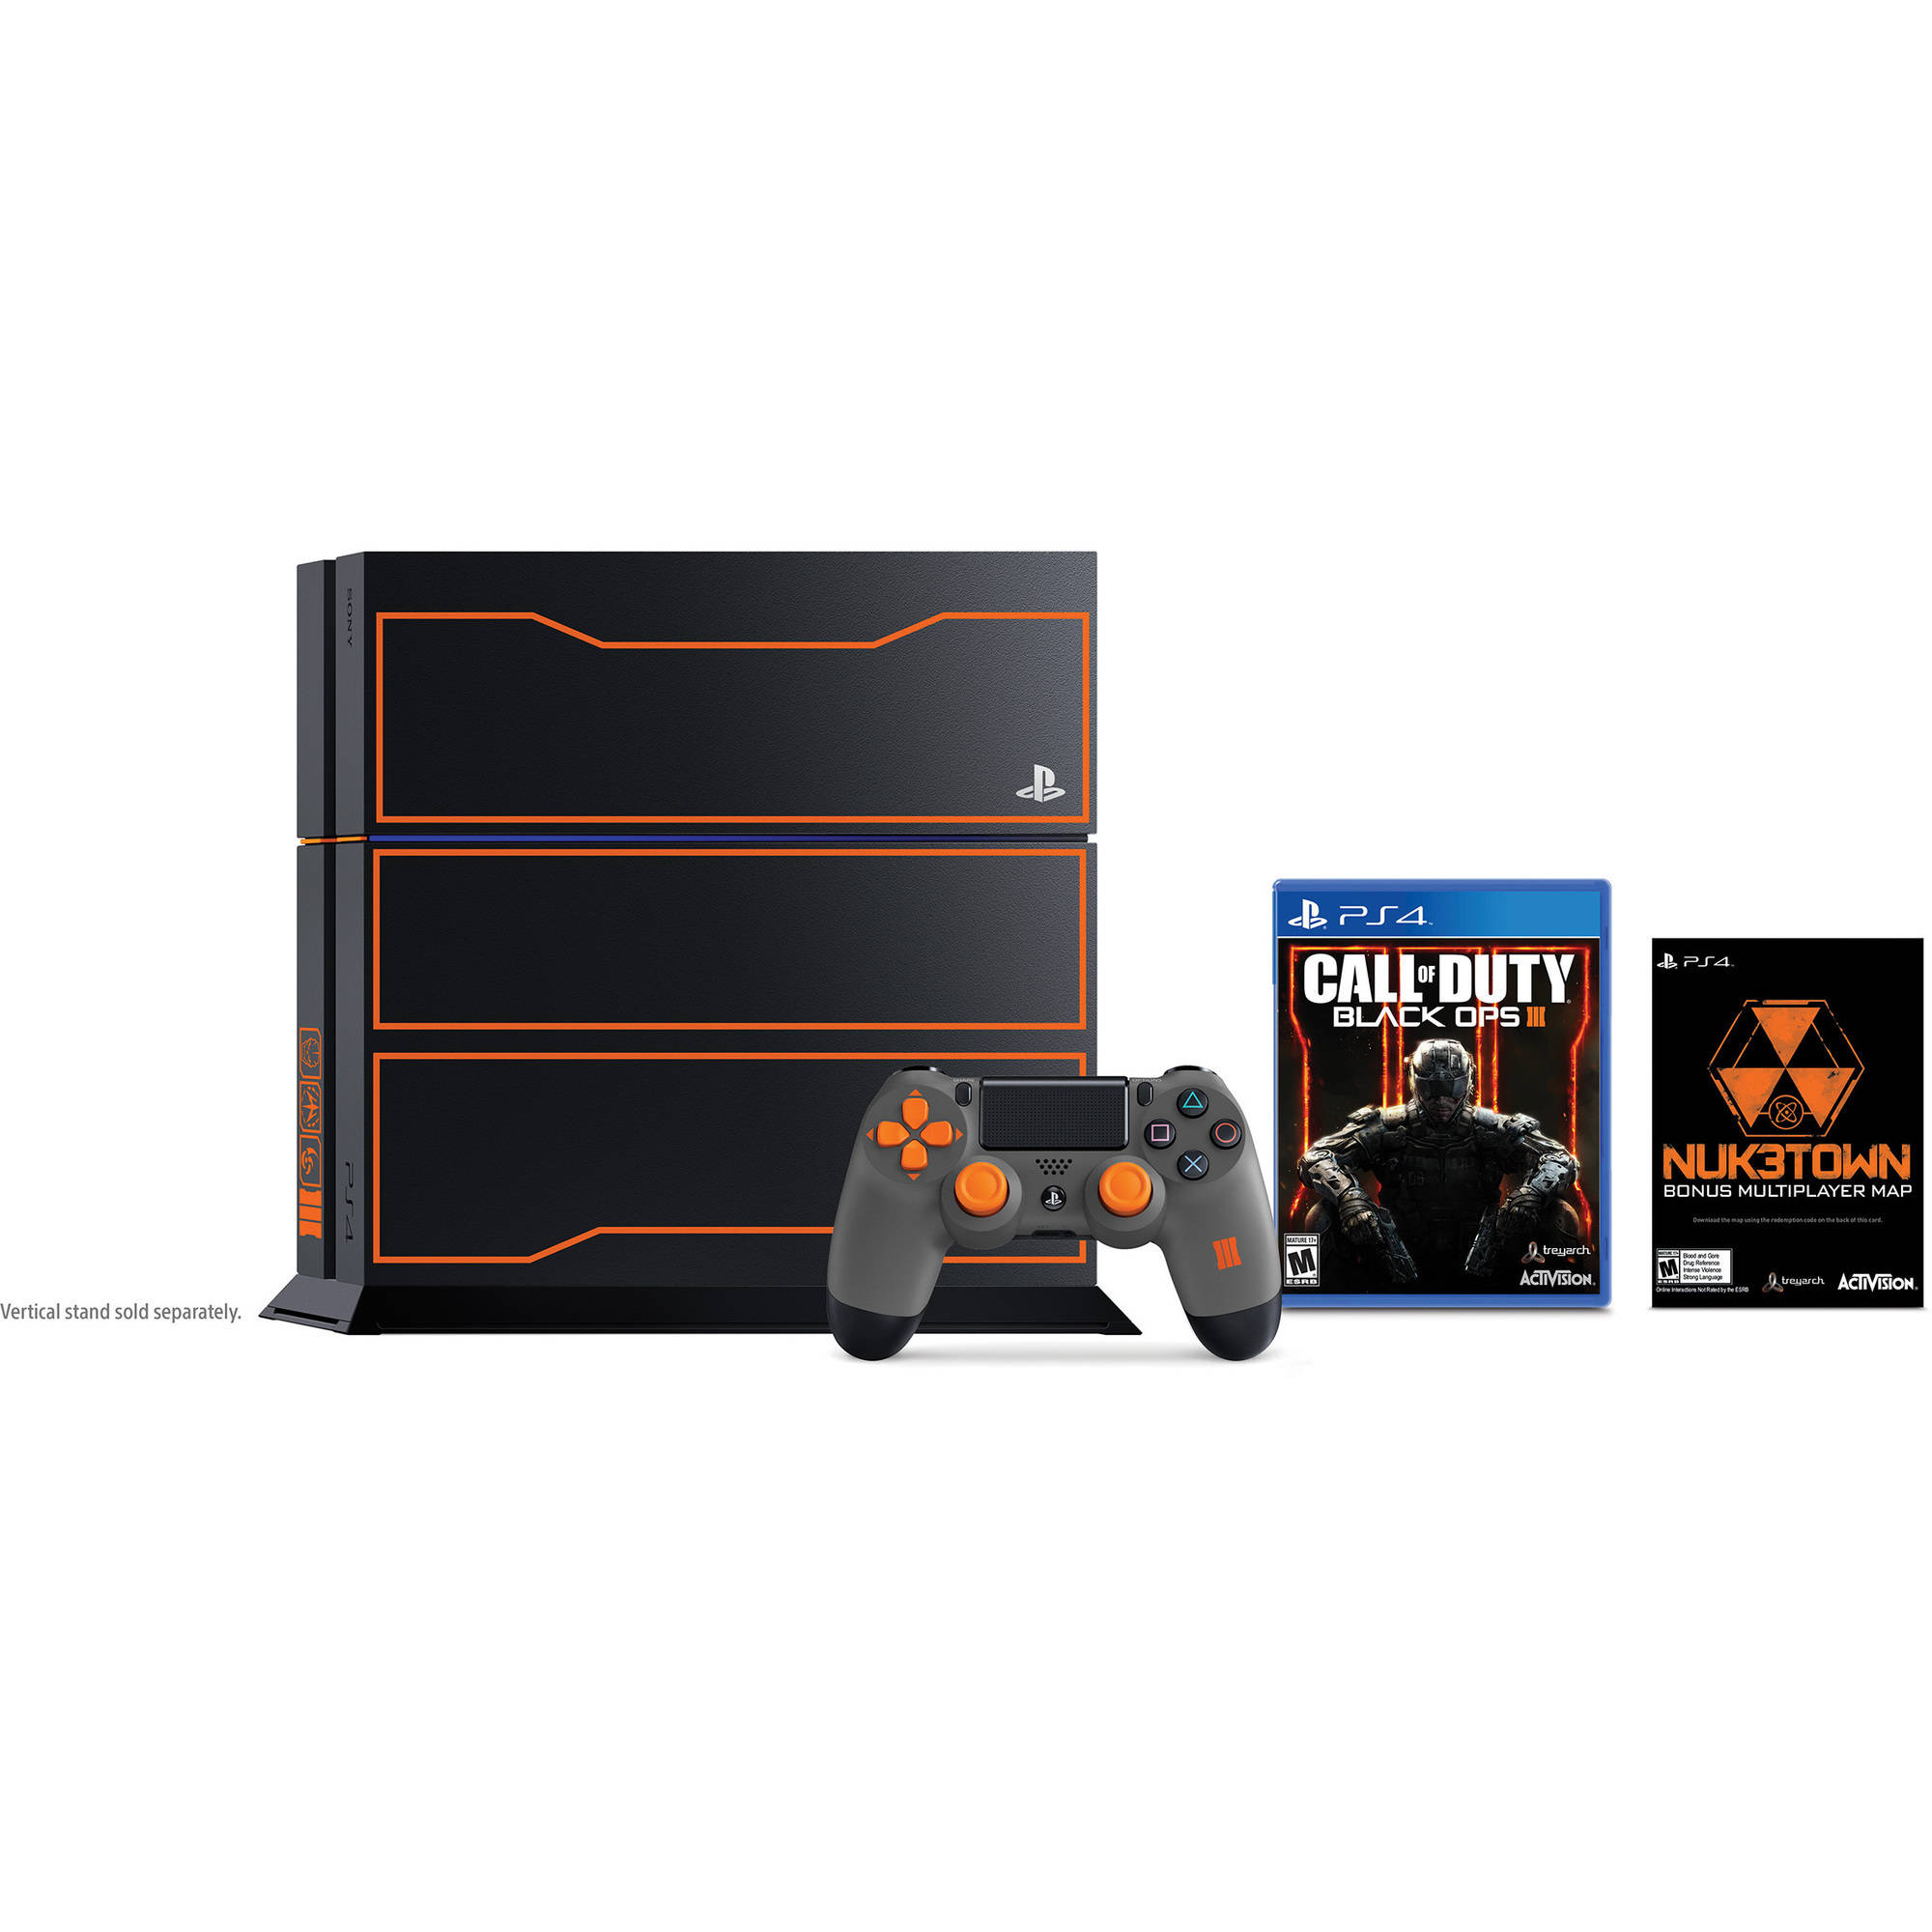 Playstation 4 Call Of Duty Black Ops Iii Limited Edition 1tb Console